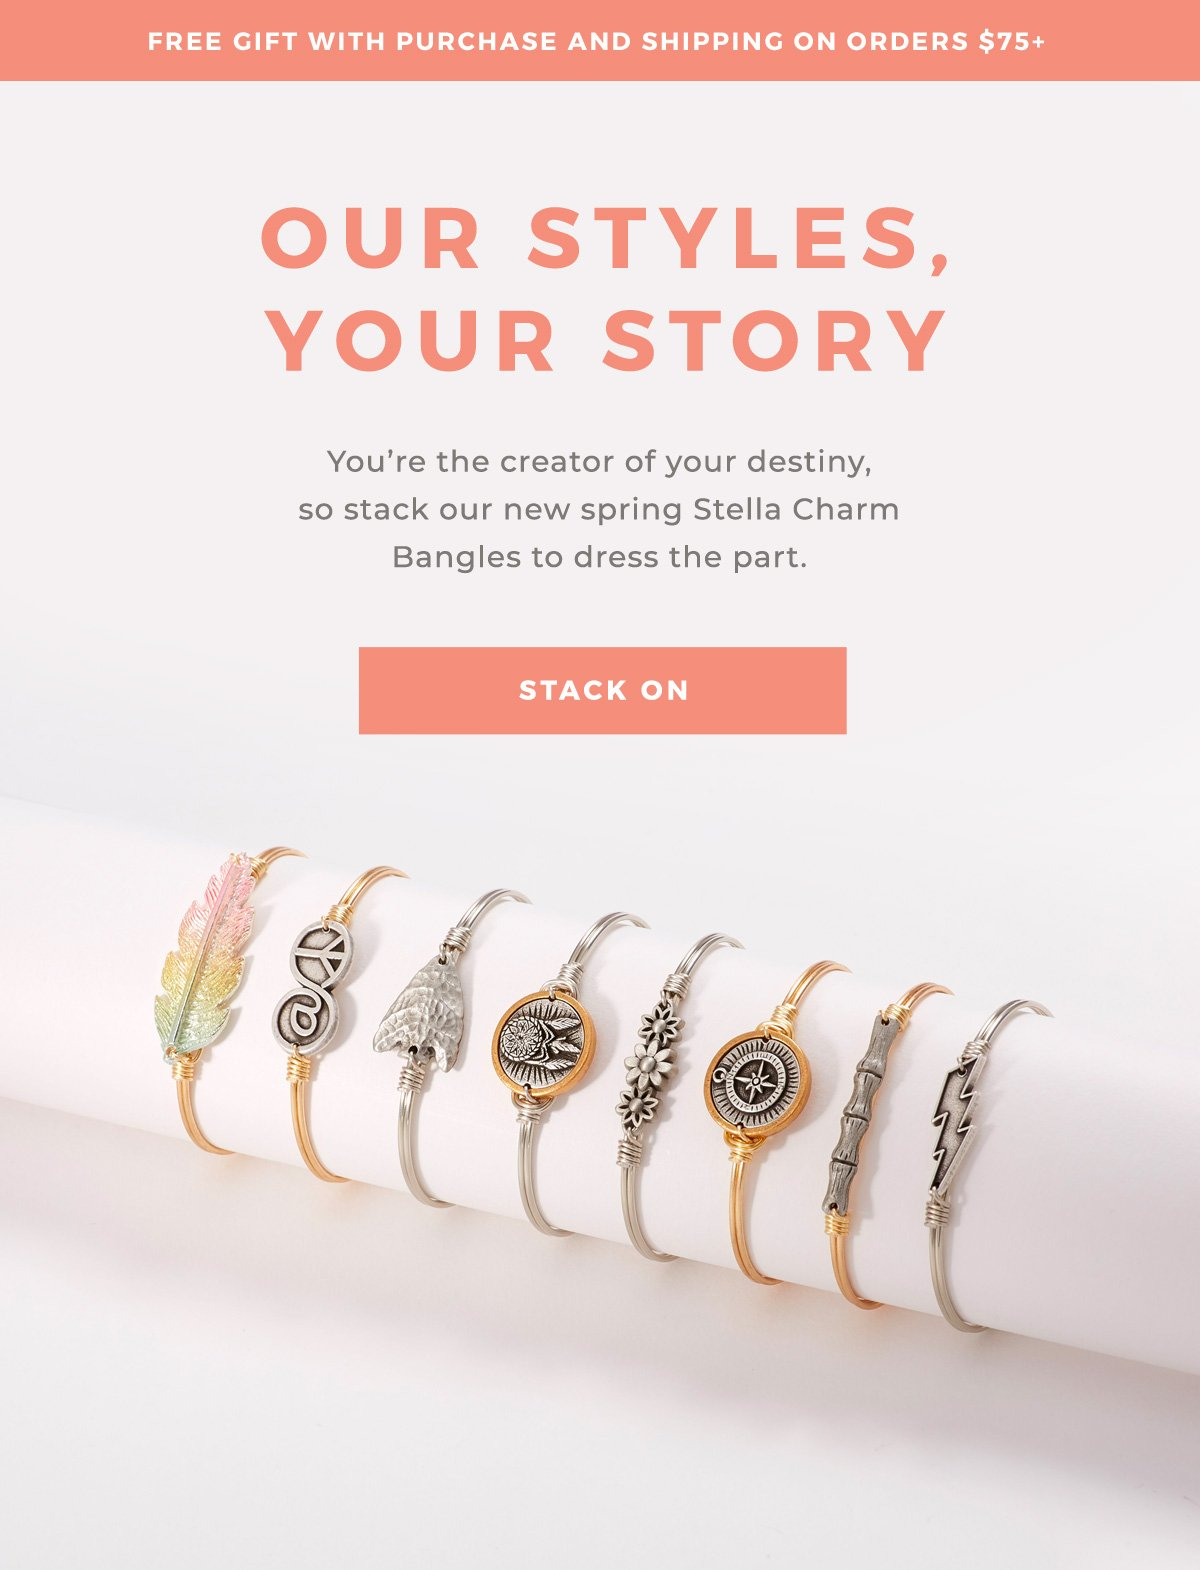 FREE GIFT WITH PURCHASE AND SHIPPING ON ORDERS OVER $75+ | OUR STYLES, YOUR STORY You're the creator of your destiny, so stack our new spring Stella Charm Bangles to dress the part. STACK ON